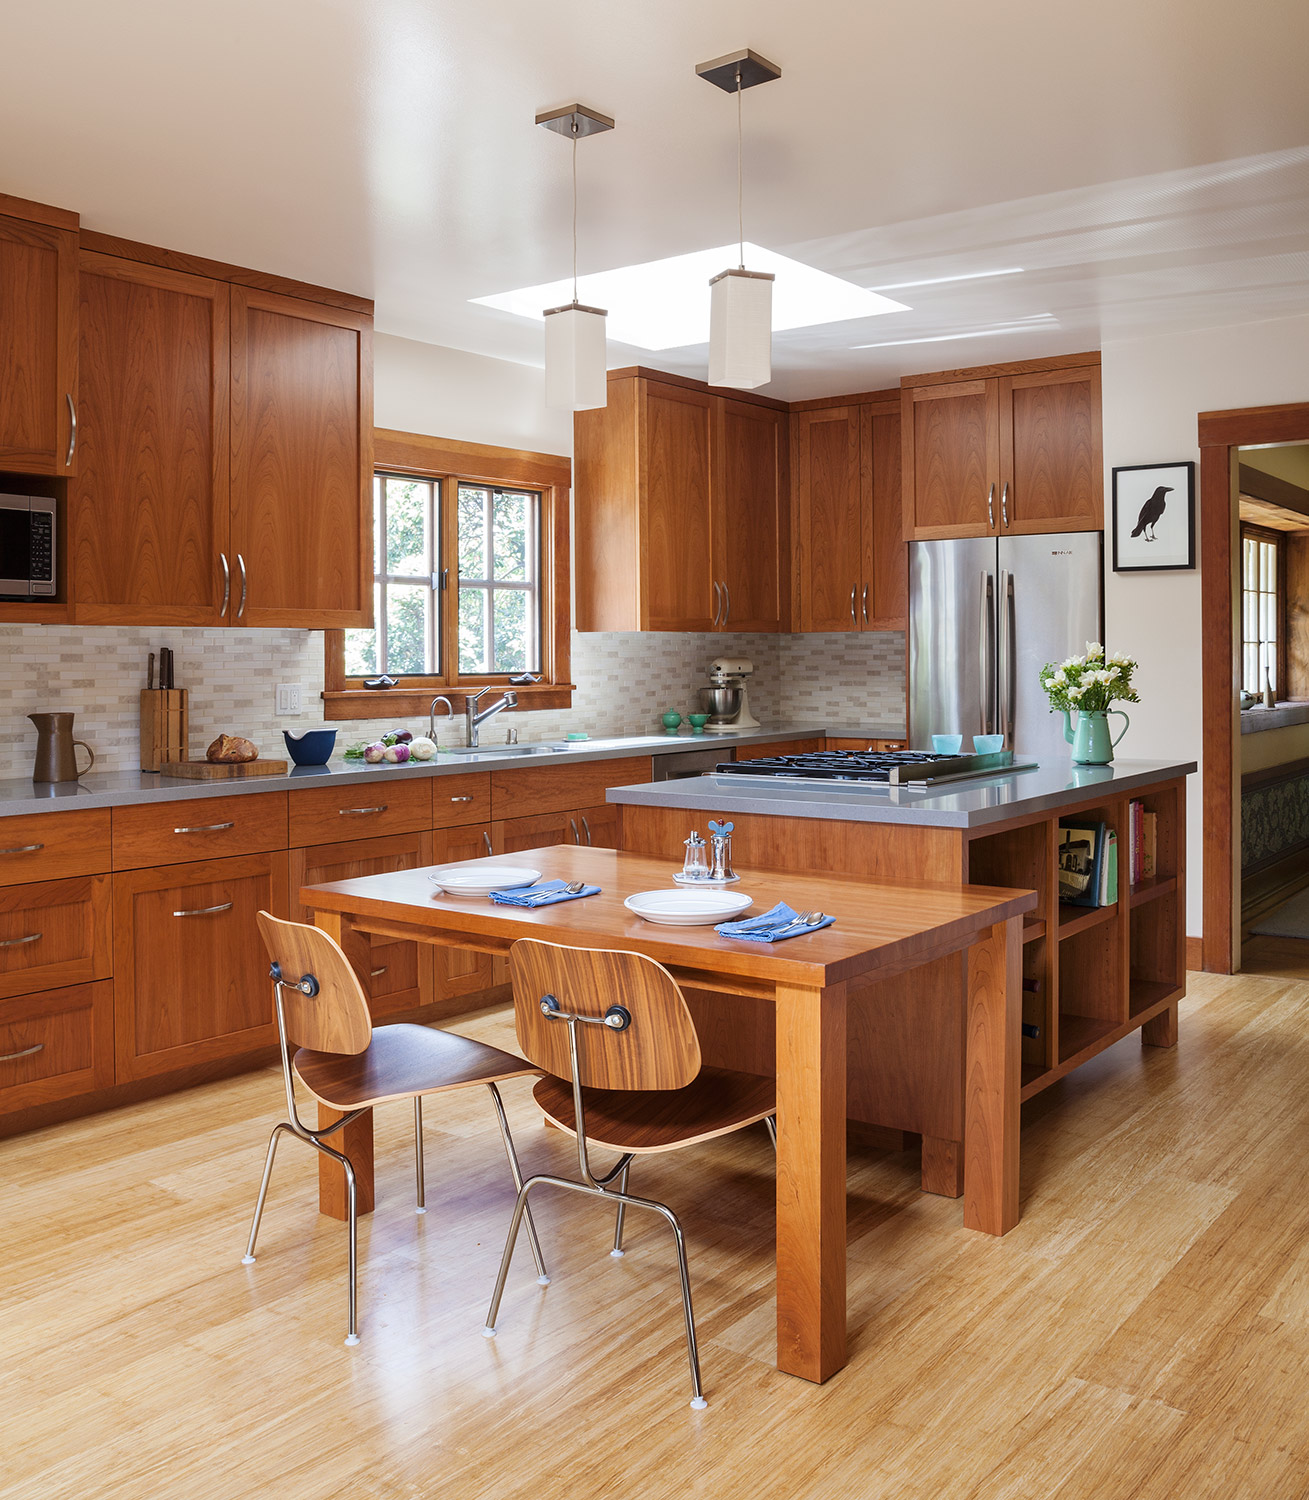 amazing photos pexels srgb home search cs interior fetching dl wood house stock more table free photo